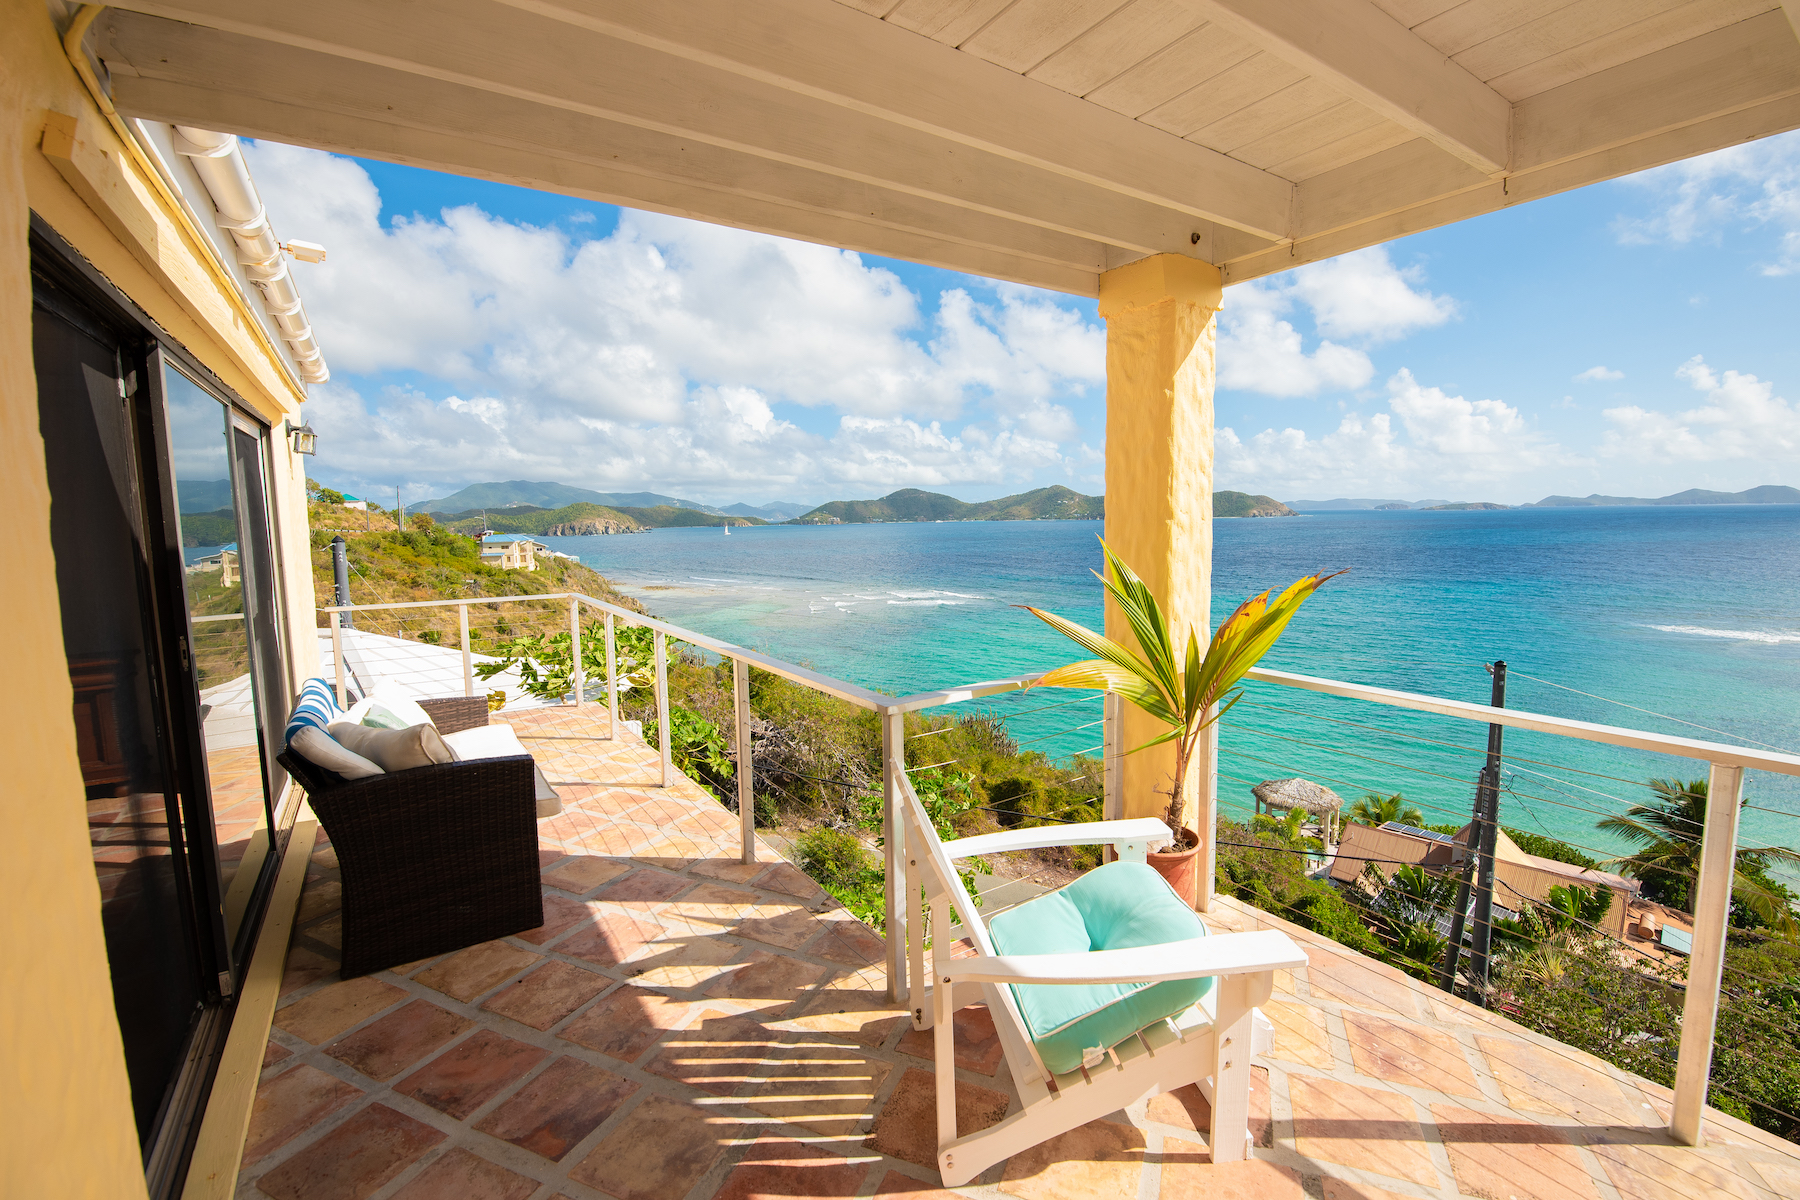 Single Family Homes for Sale at Mystic Moon 3Bb-1 Estate Hard Labor St John, Virgin Islands 00830 United States Virgin Islands